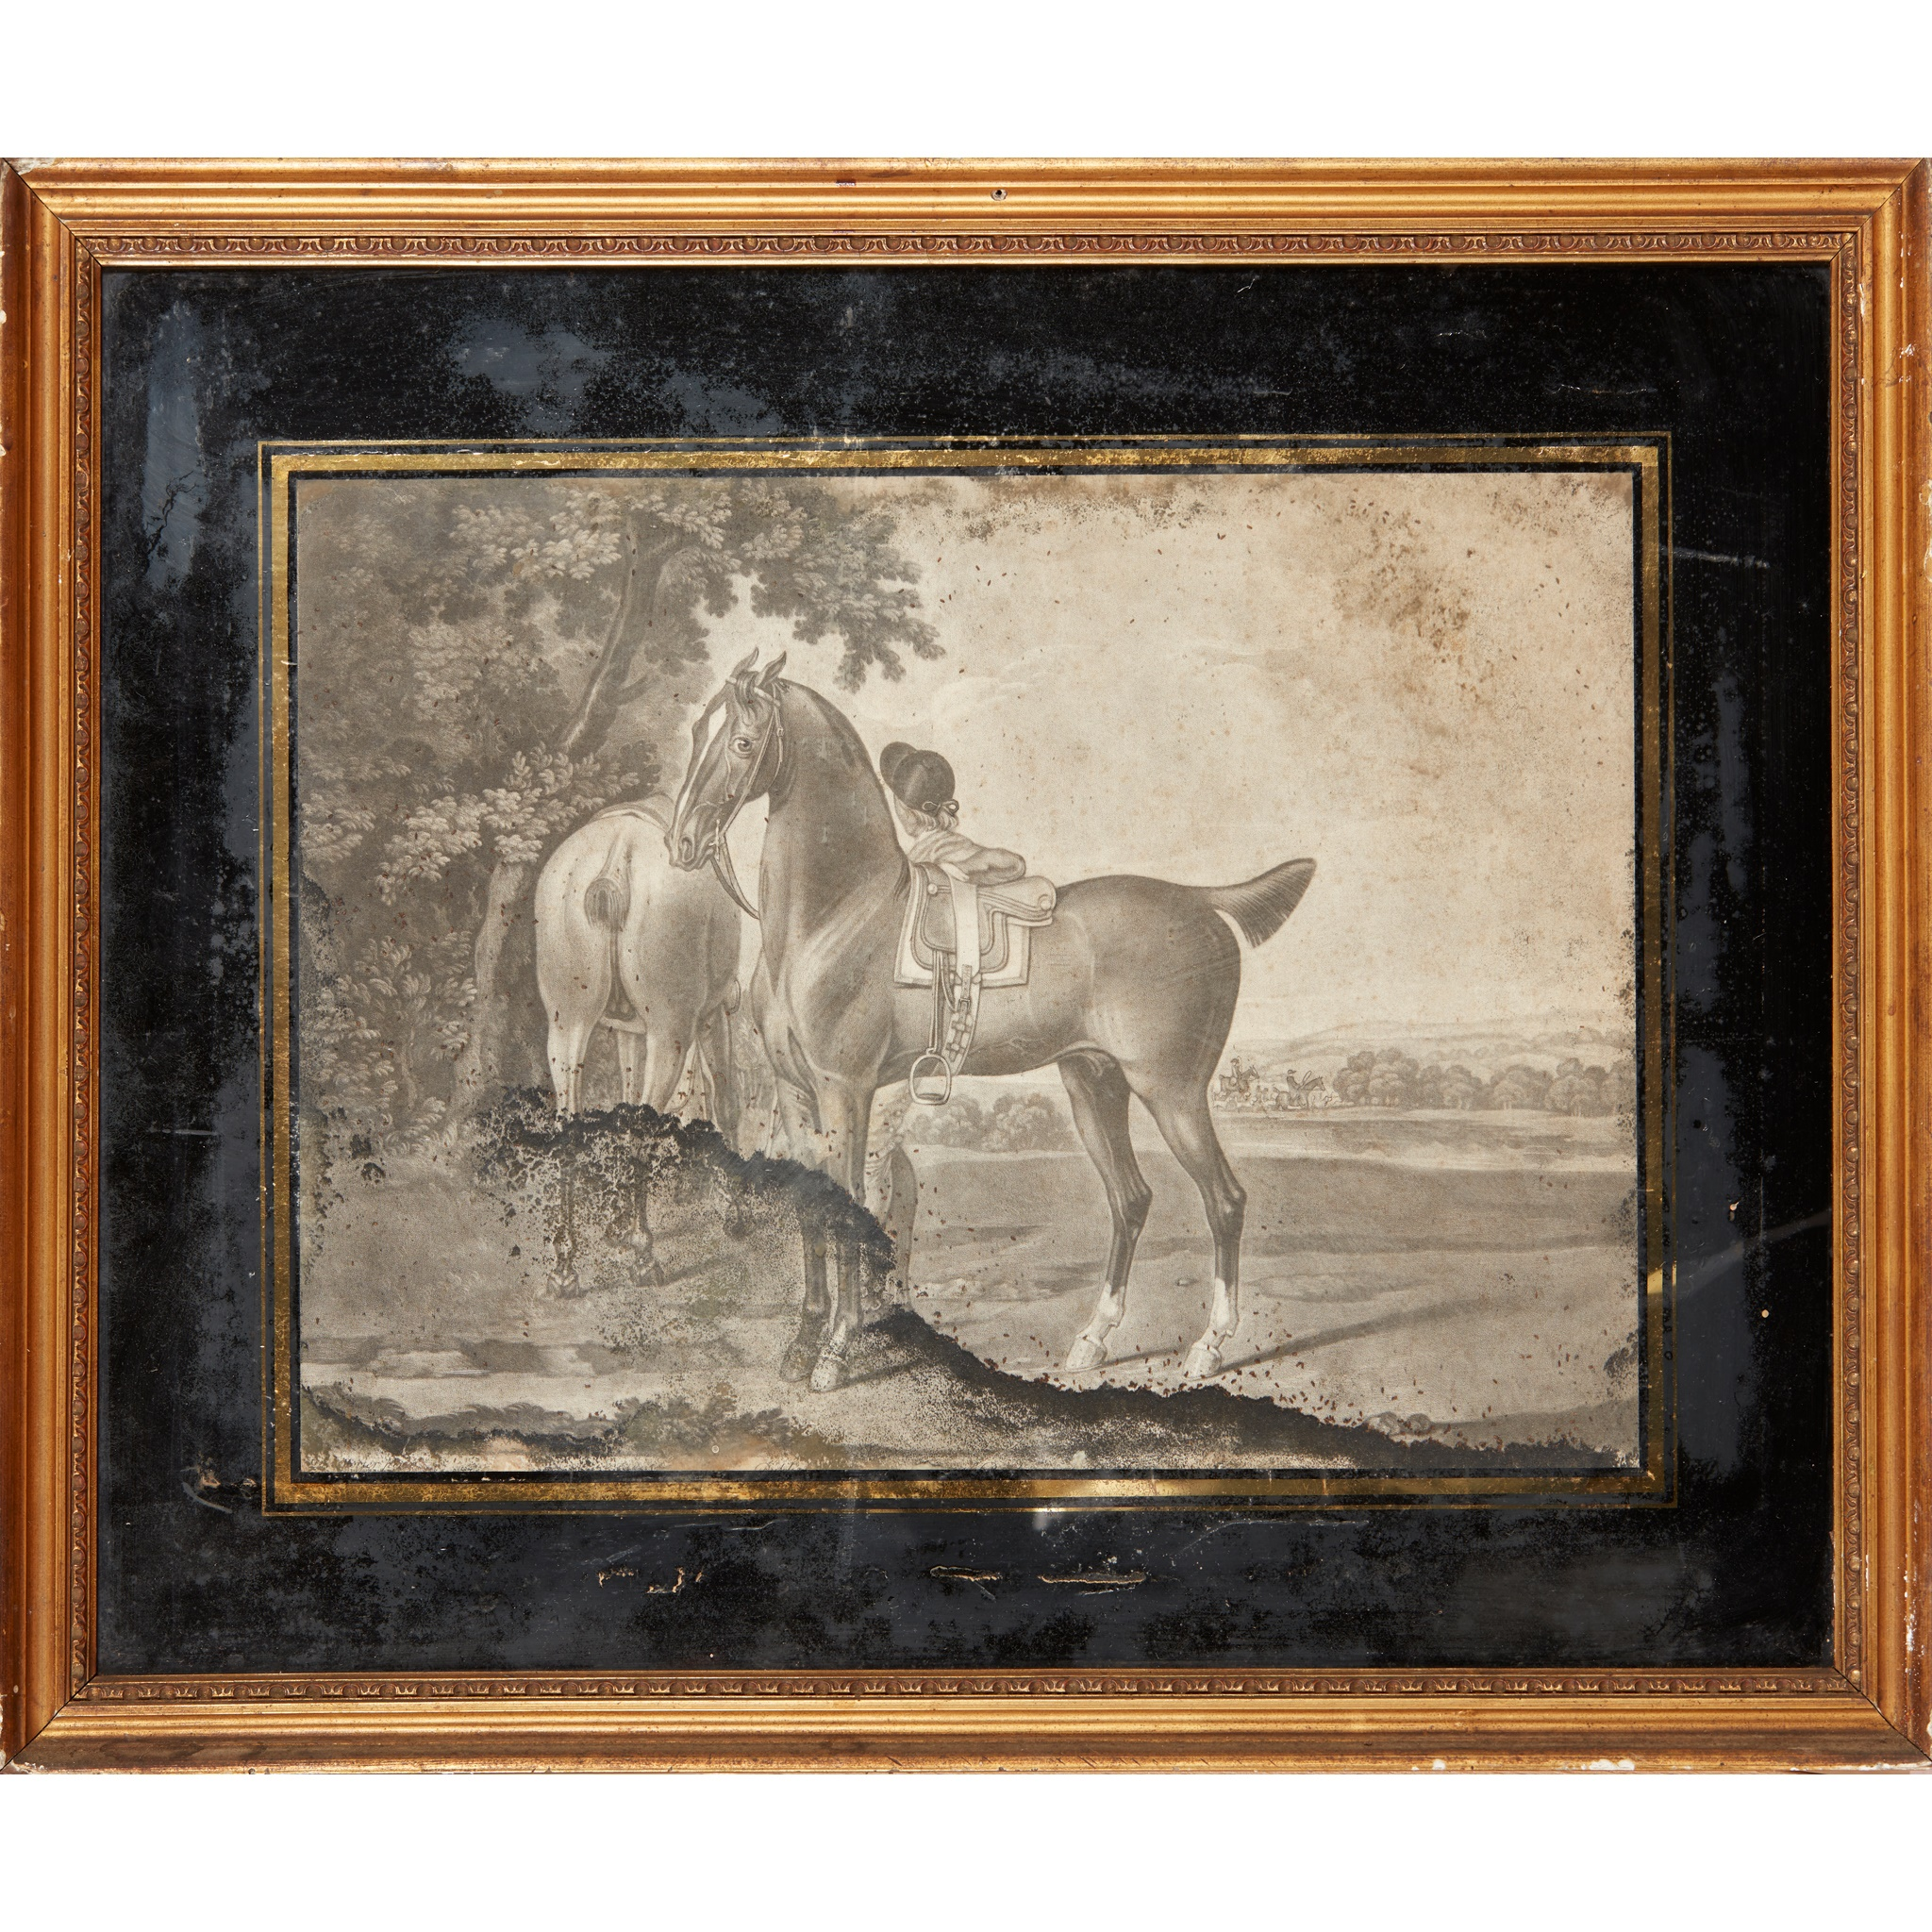 COLLECTION OF ELEVEN MEZZOTINT EQUESTRIAN PRINTS LATE 18TH CENTURY - Image 4 of 8